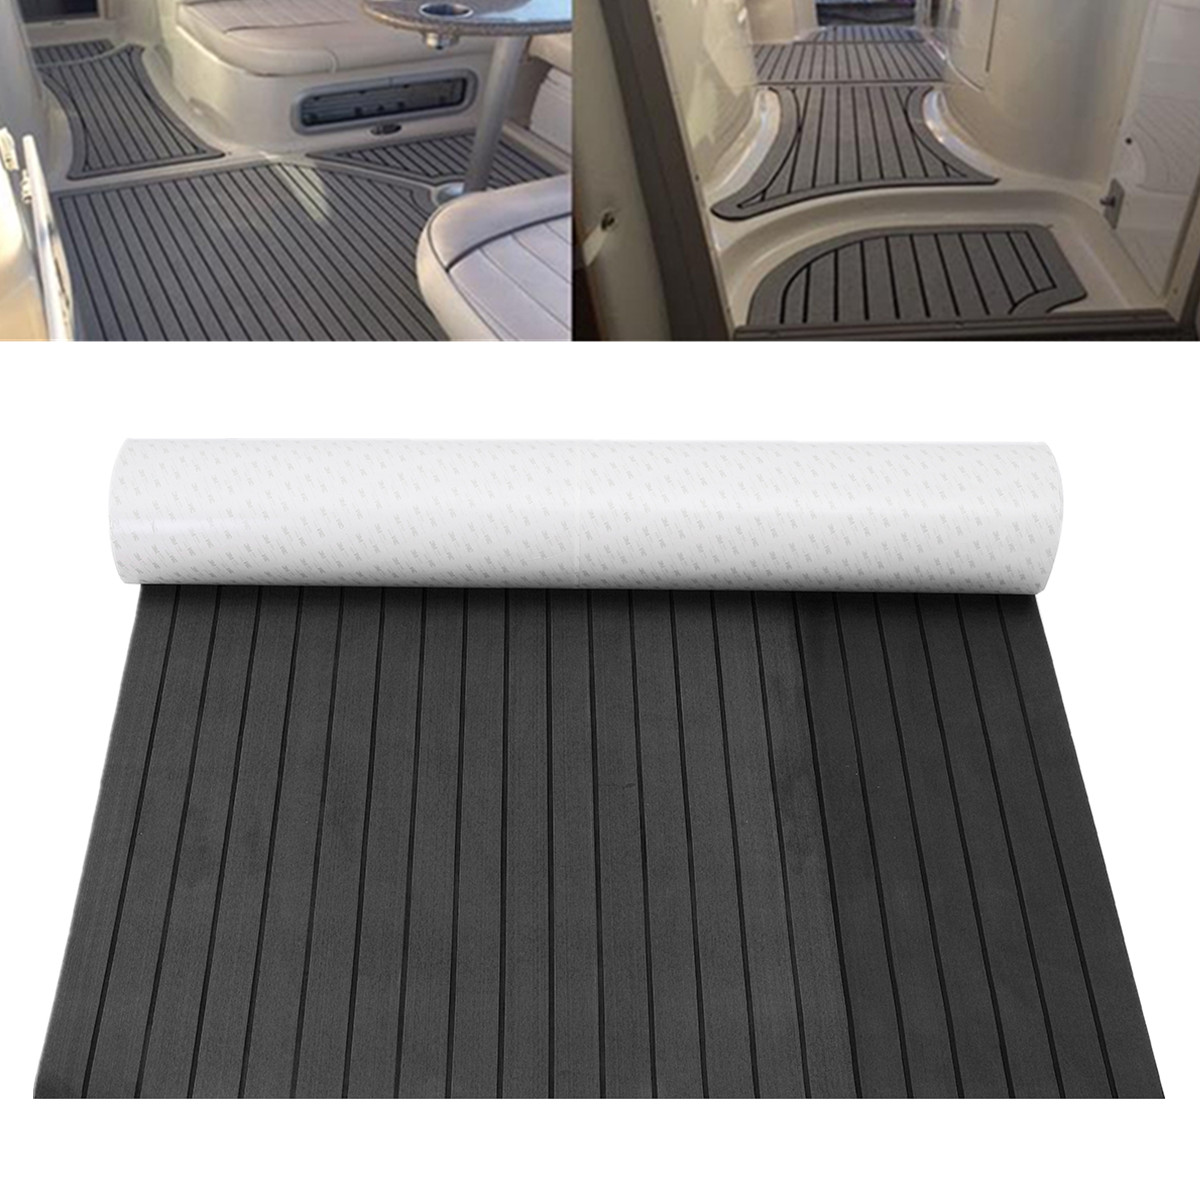 Self Adhesive EVA Foam Teak Sheet Teak Flooring Mat Teak Boat Decking for Touring Car Marine Yacht Dark Grey 120cmx240cm 5mm teak house комод maori